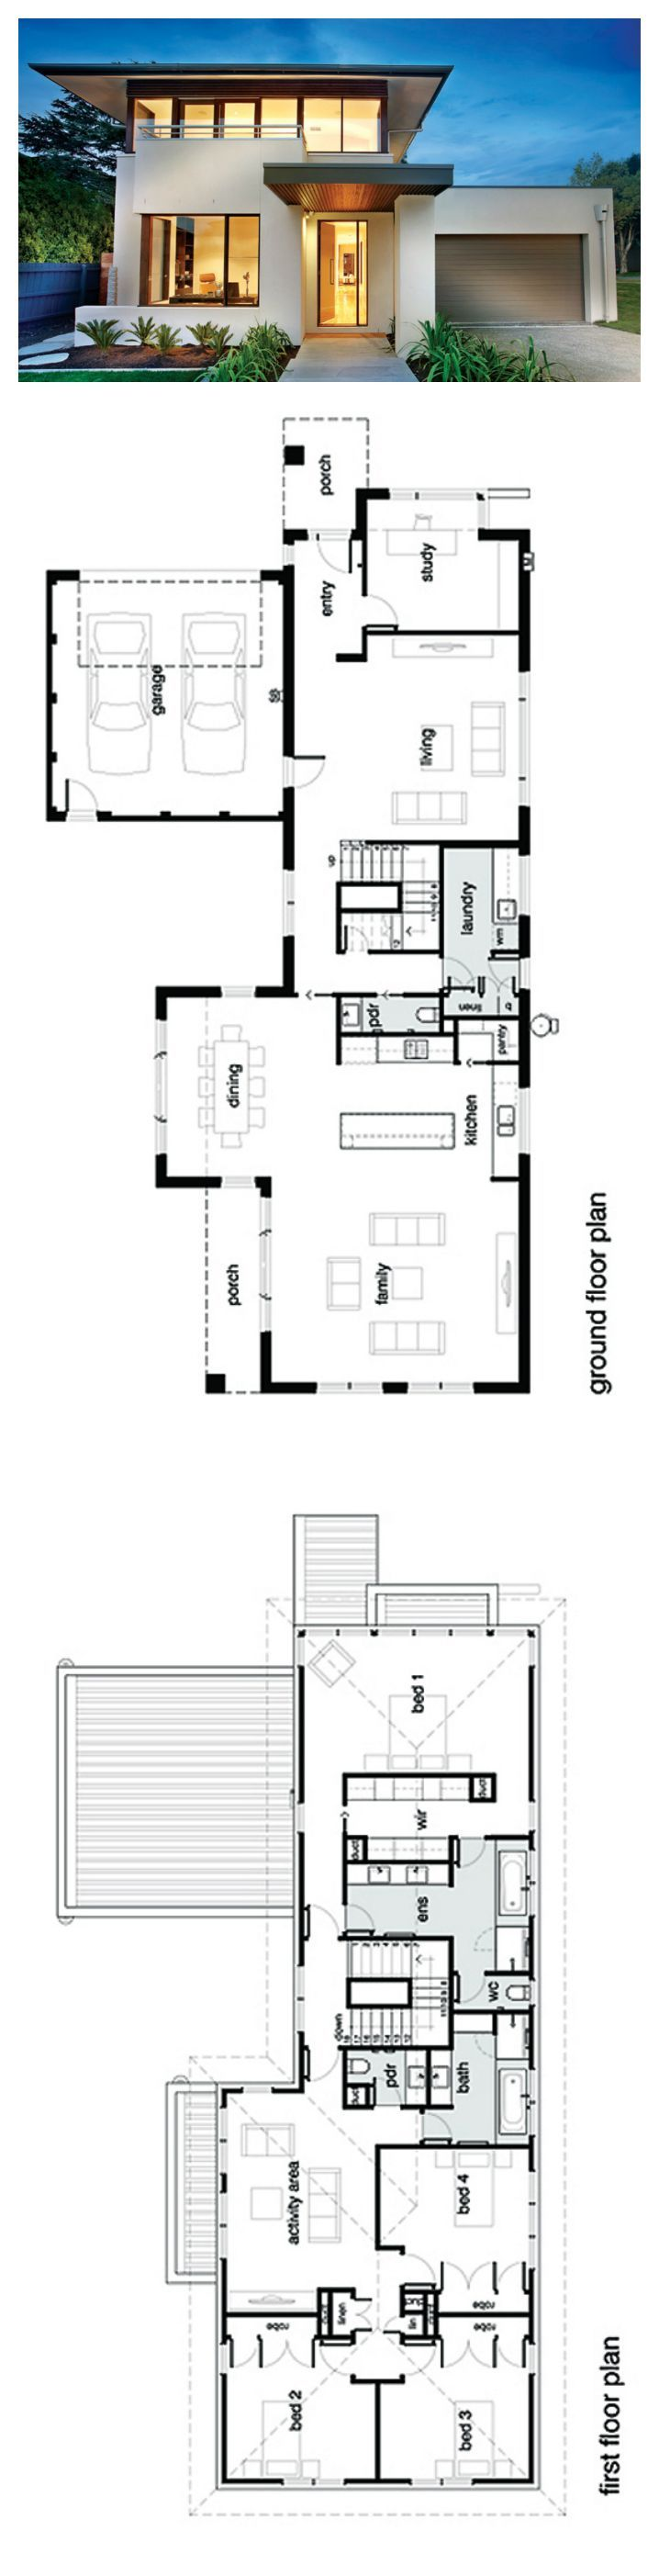 Best 25 modern house plans ideas on pinterest modern for New home blueprints photos